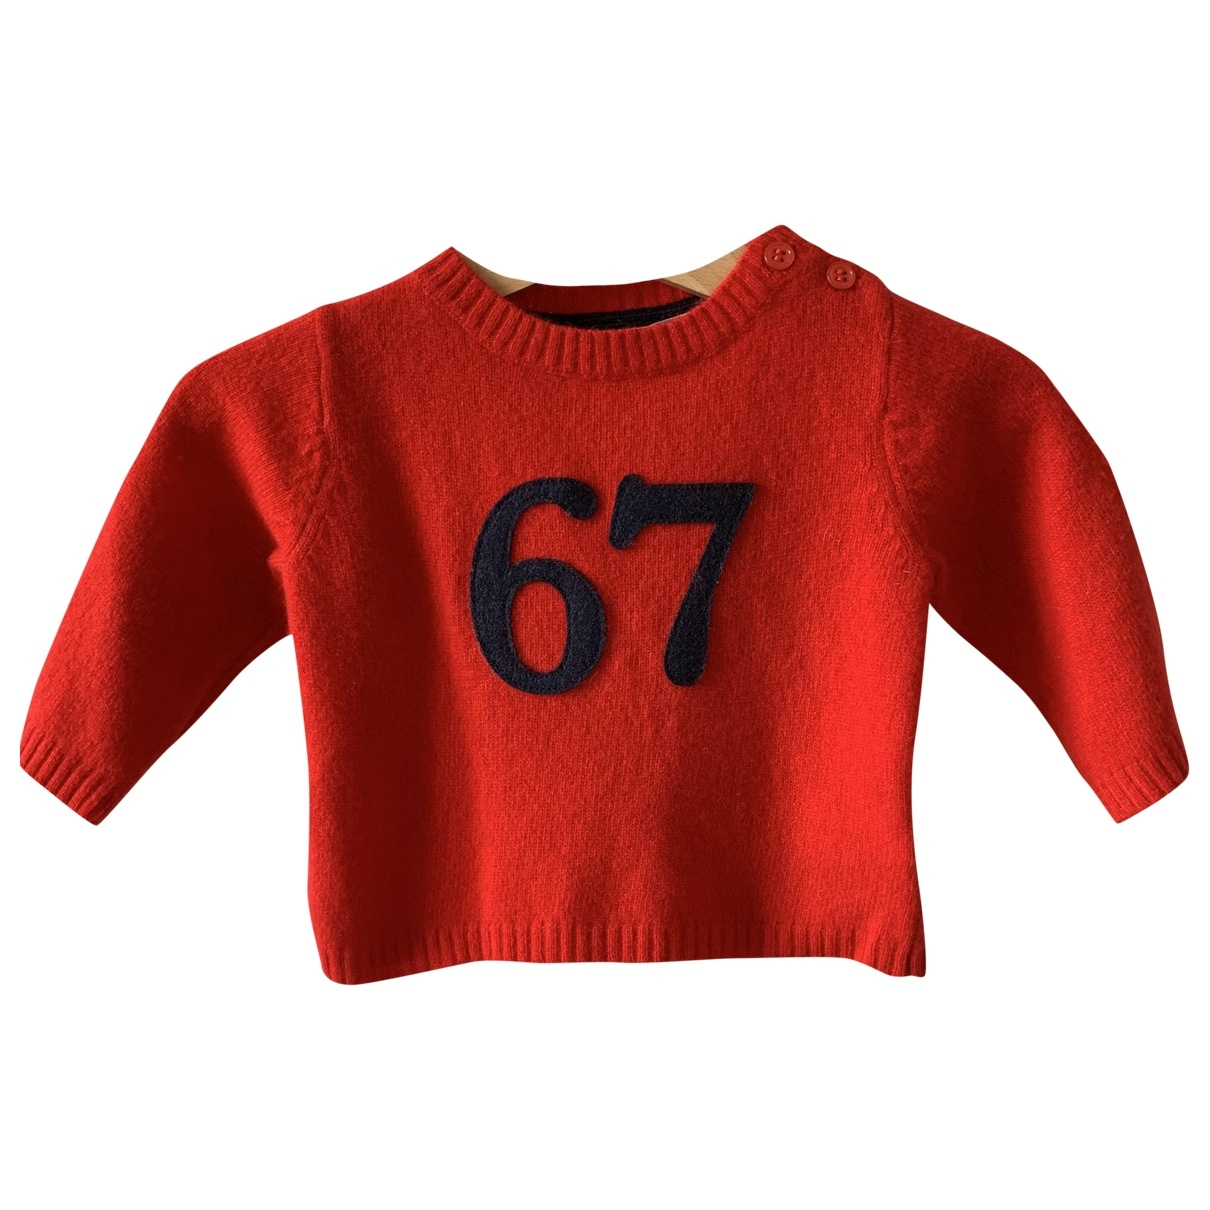 Bonpoint \N Red Wool Knitwear for Kids 6 months - up to 67cm FR